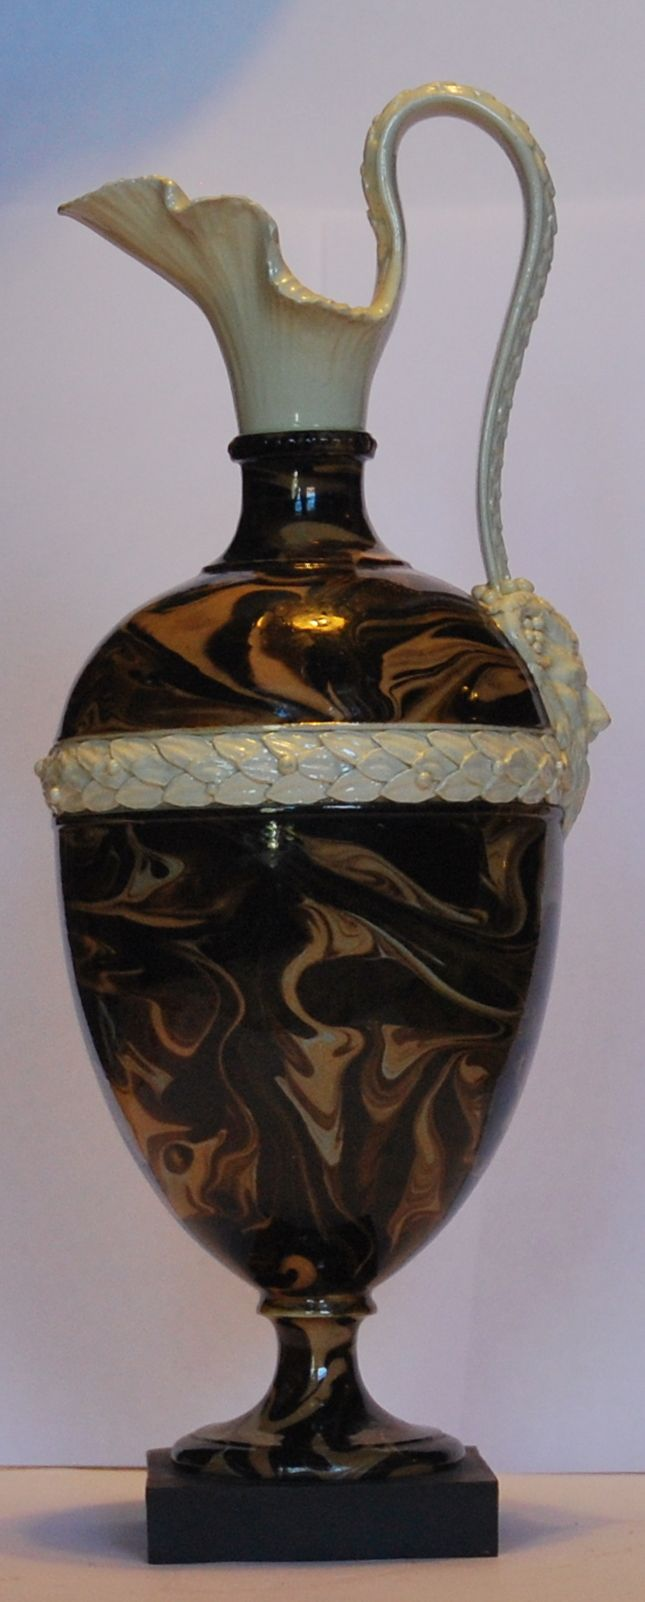 "Oenochoe in surface agate, 10.5"" high. Wedgwood & Bentley, C1775."